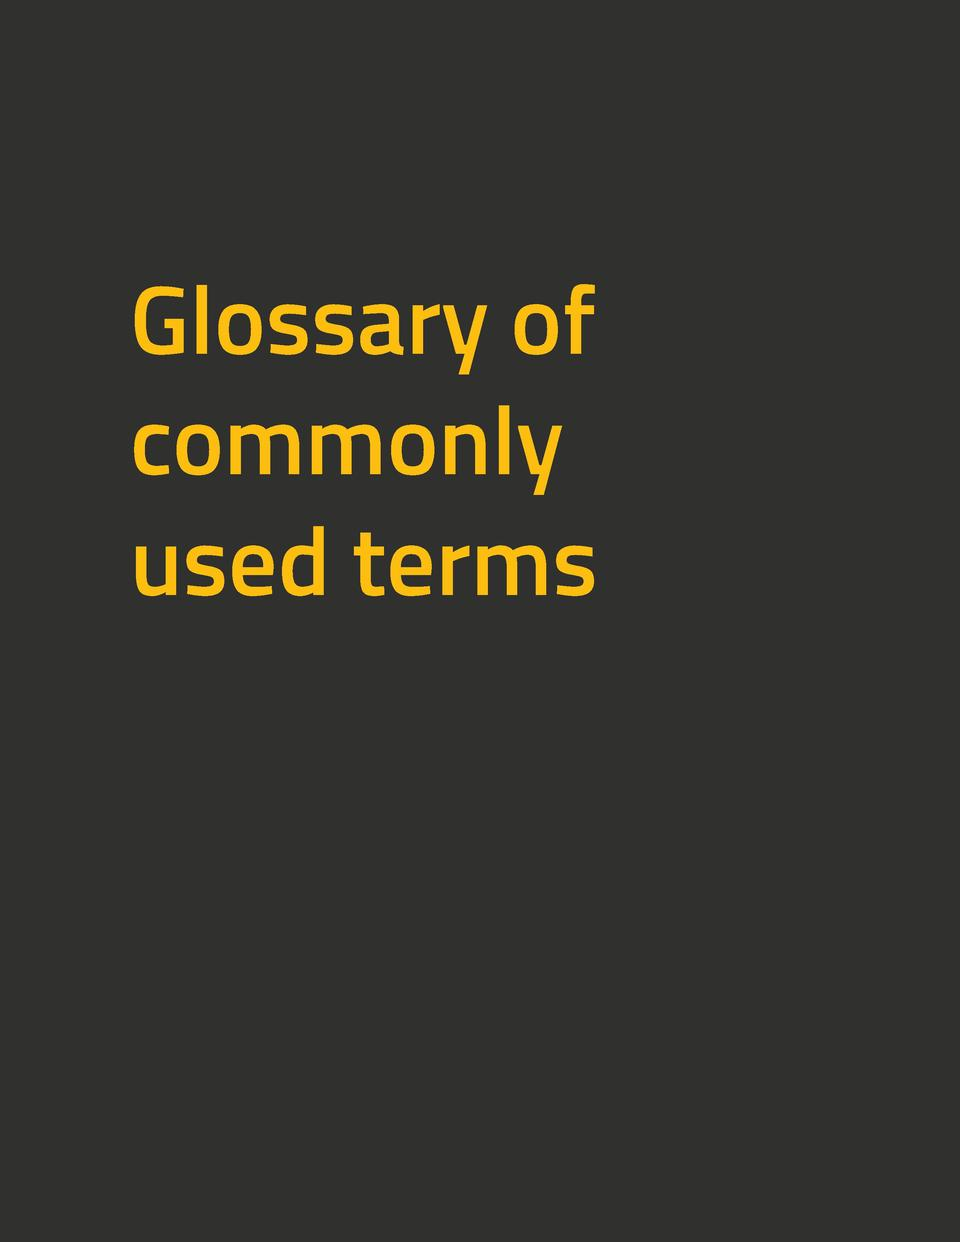 Glossary of commonly used terms